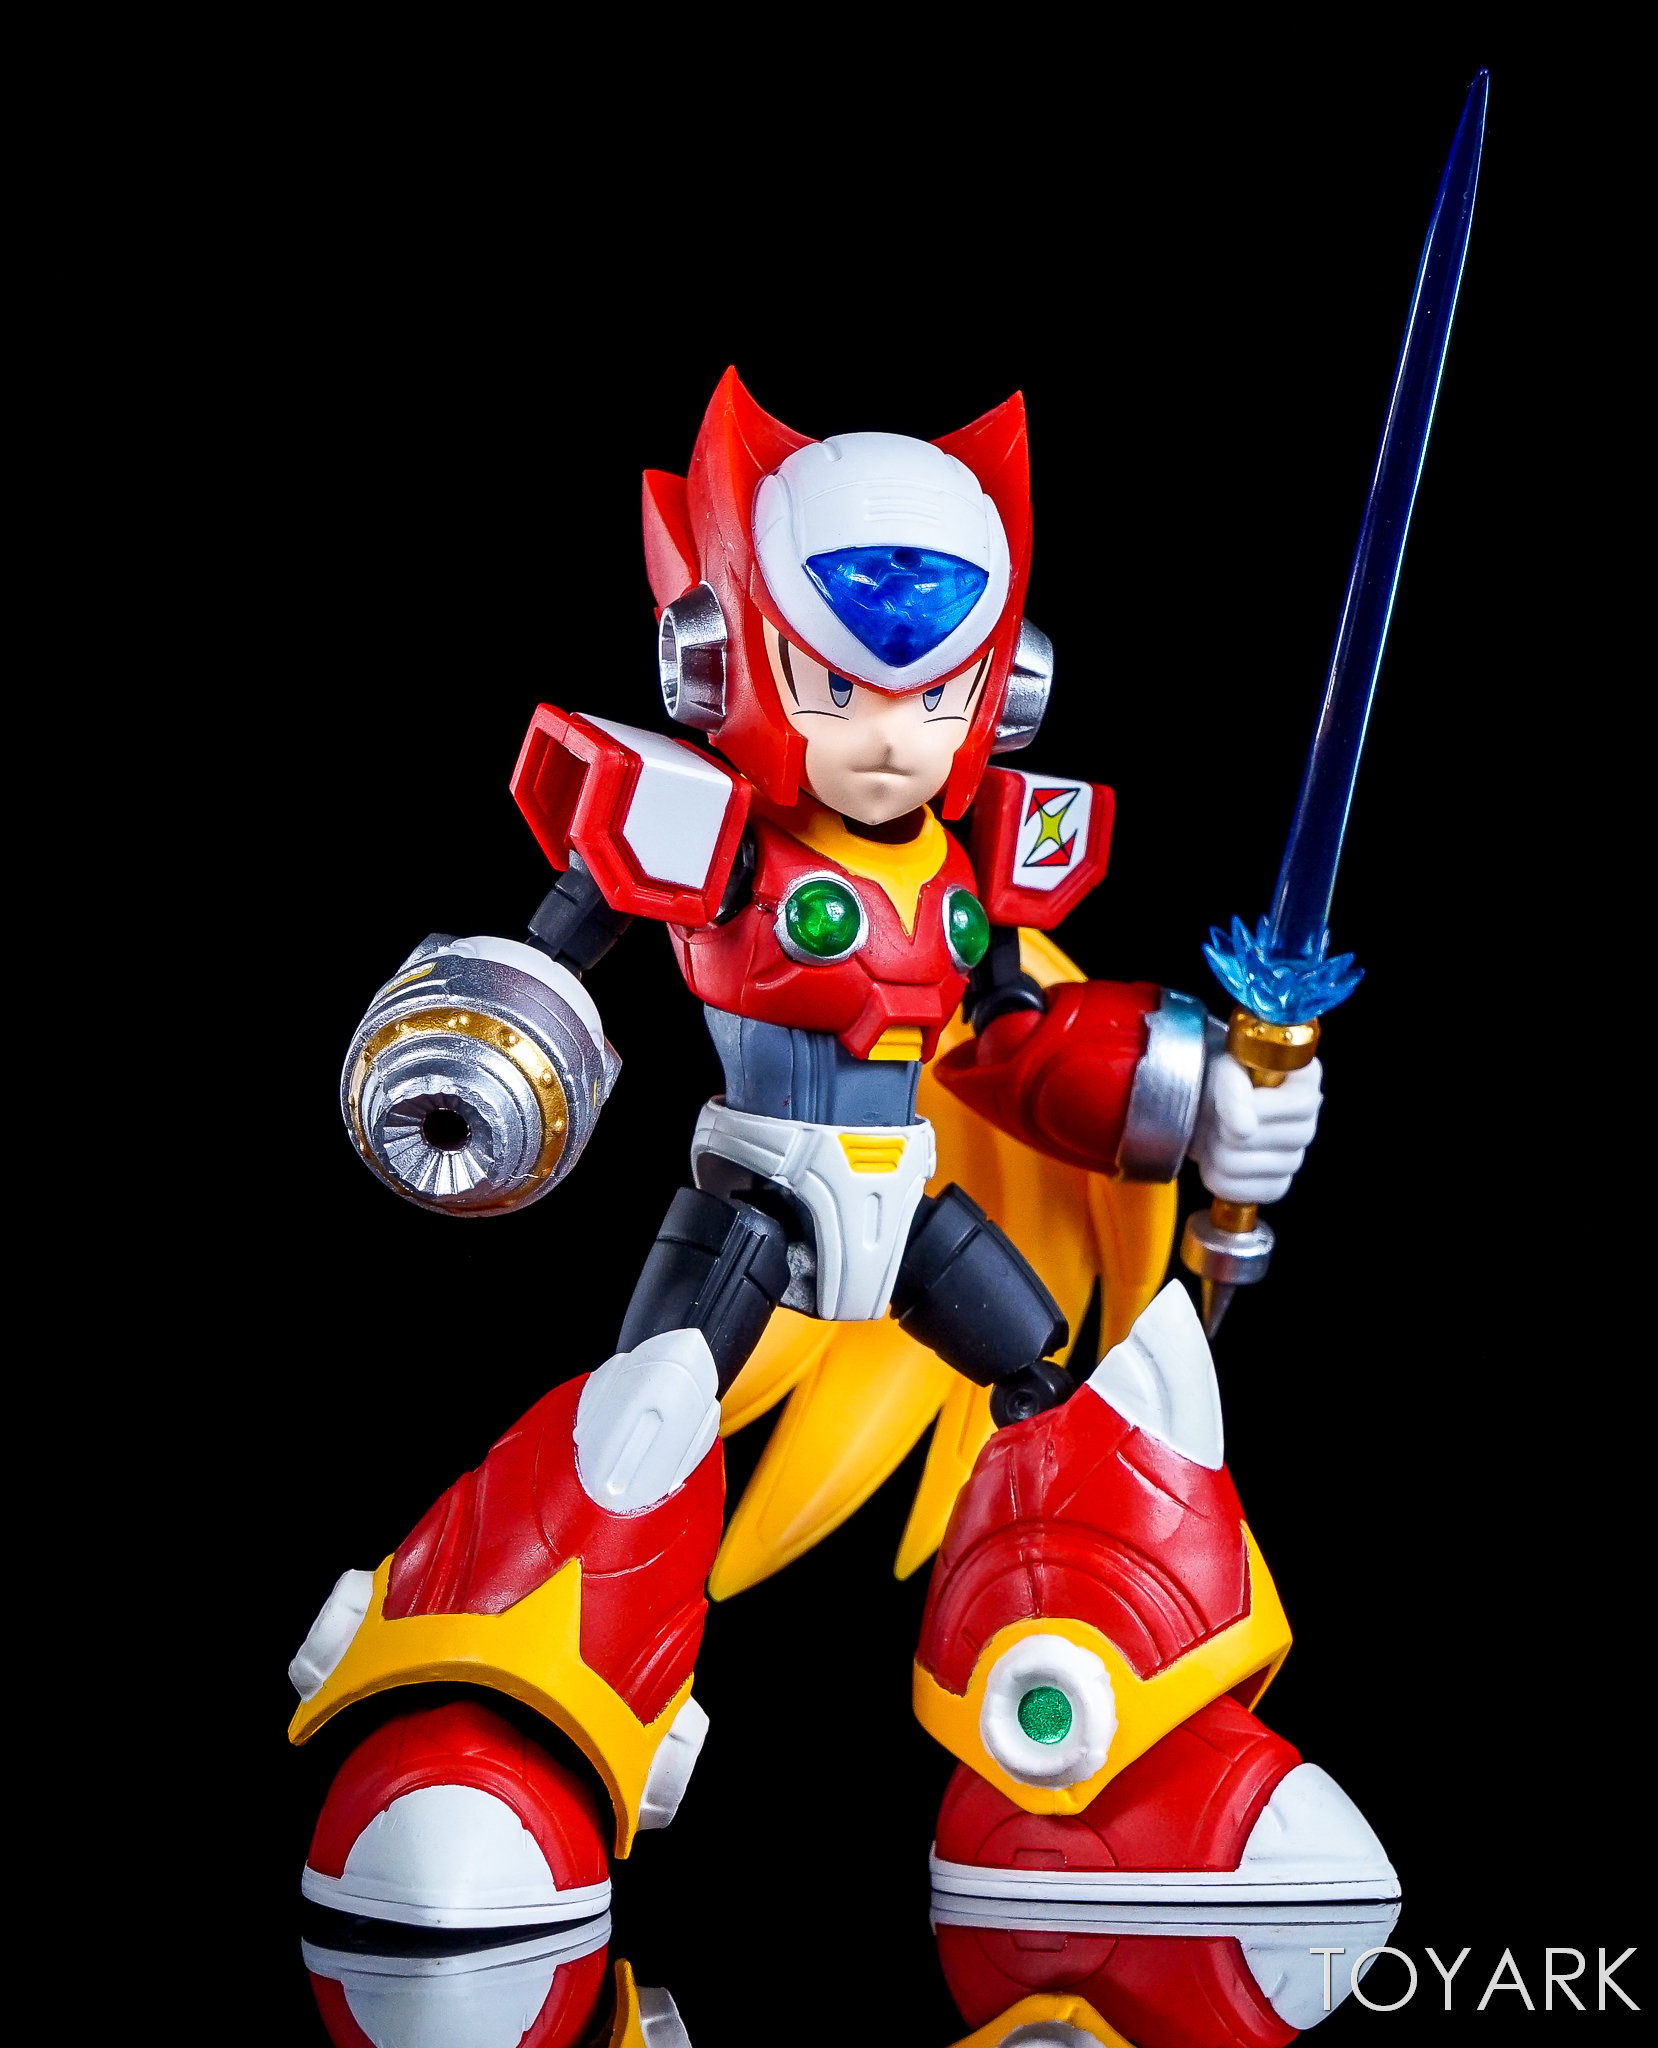 http://news.toyark.com/wp-content/uploads/sites/4/2017/11/Mega-Man-X-NX-Edge-Style-011.jpg